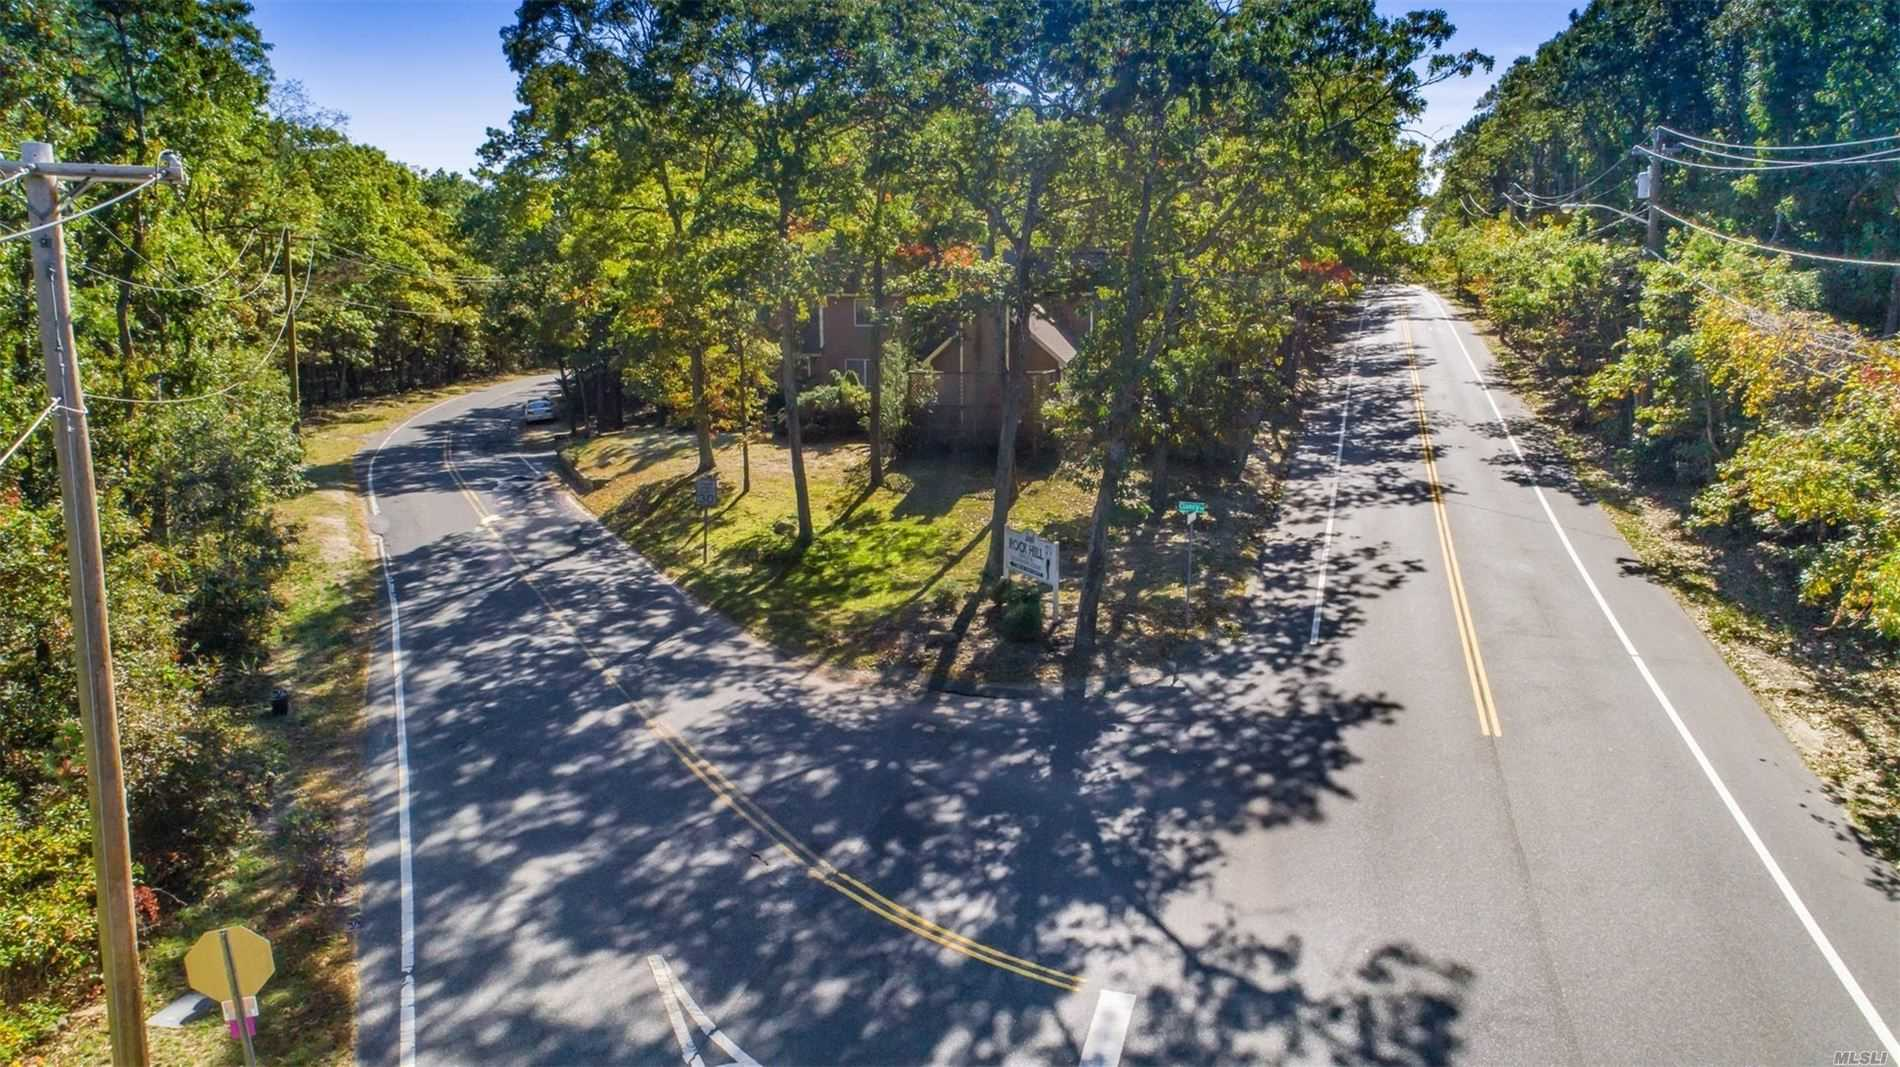 Property for sale at Chapman Boulevard, Manorville NY 11949, Manorville,  New York 11949